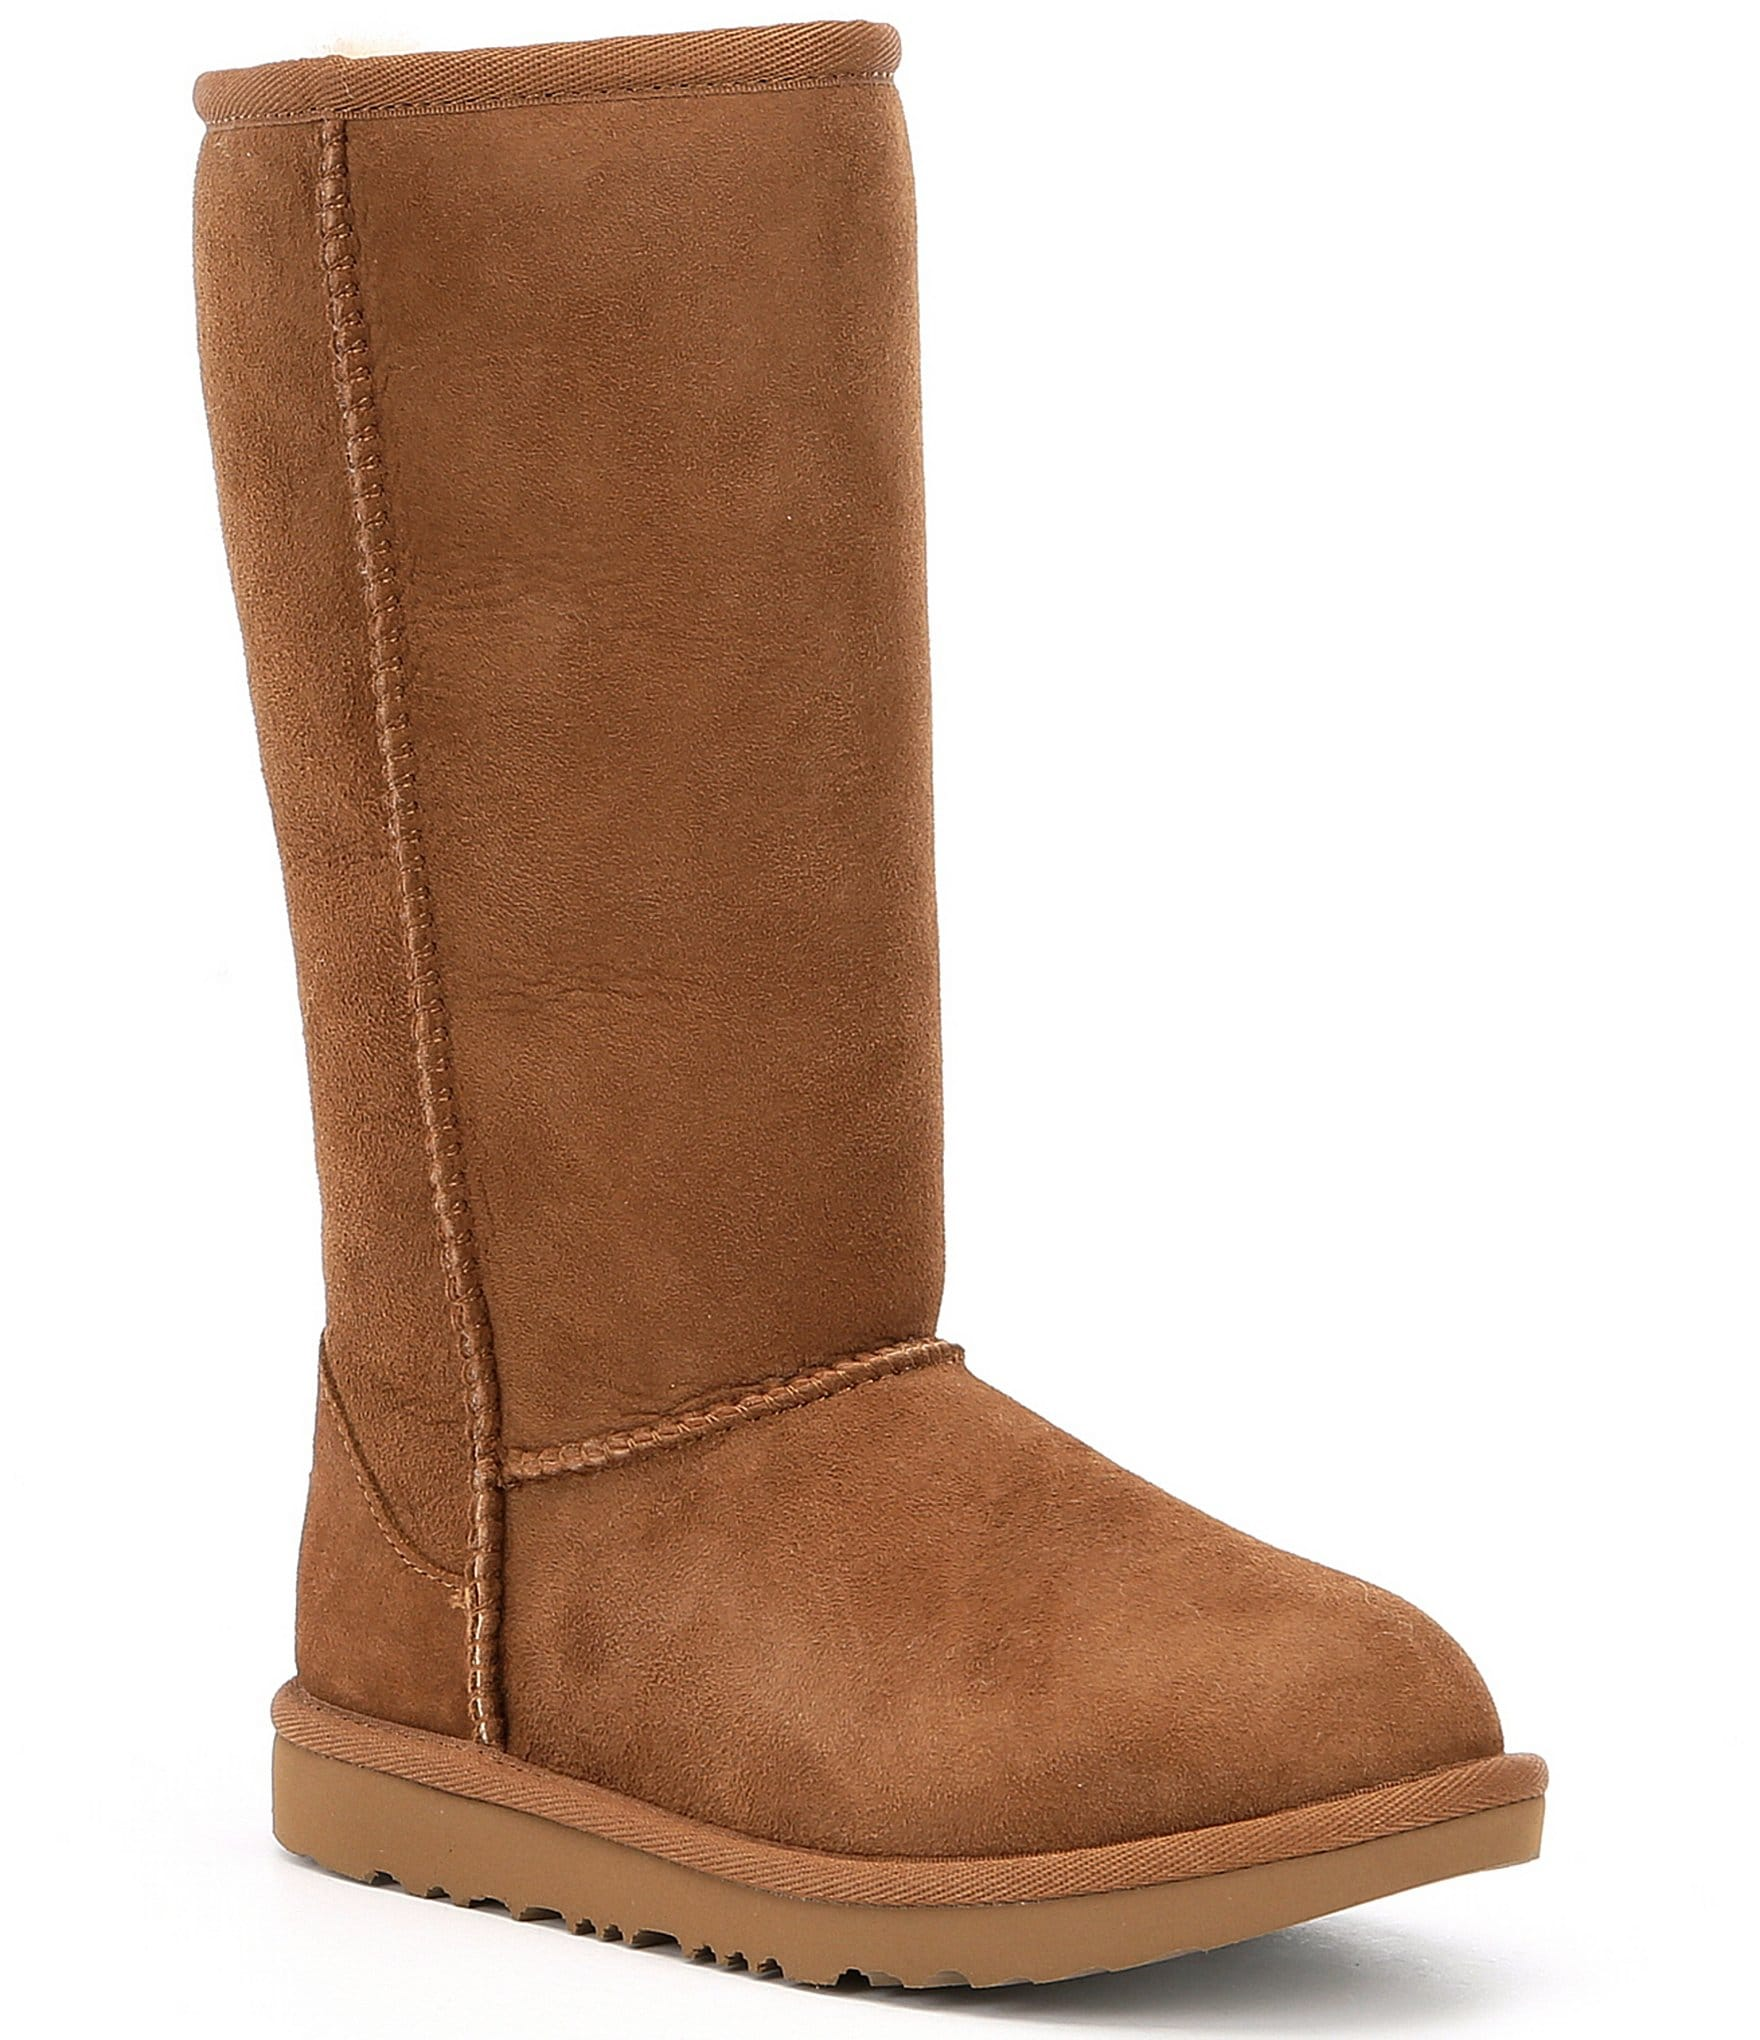 a3e50218ba7 Ugg Boots For Sale In Las Vegas - cheap watches mgc-gas.com